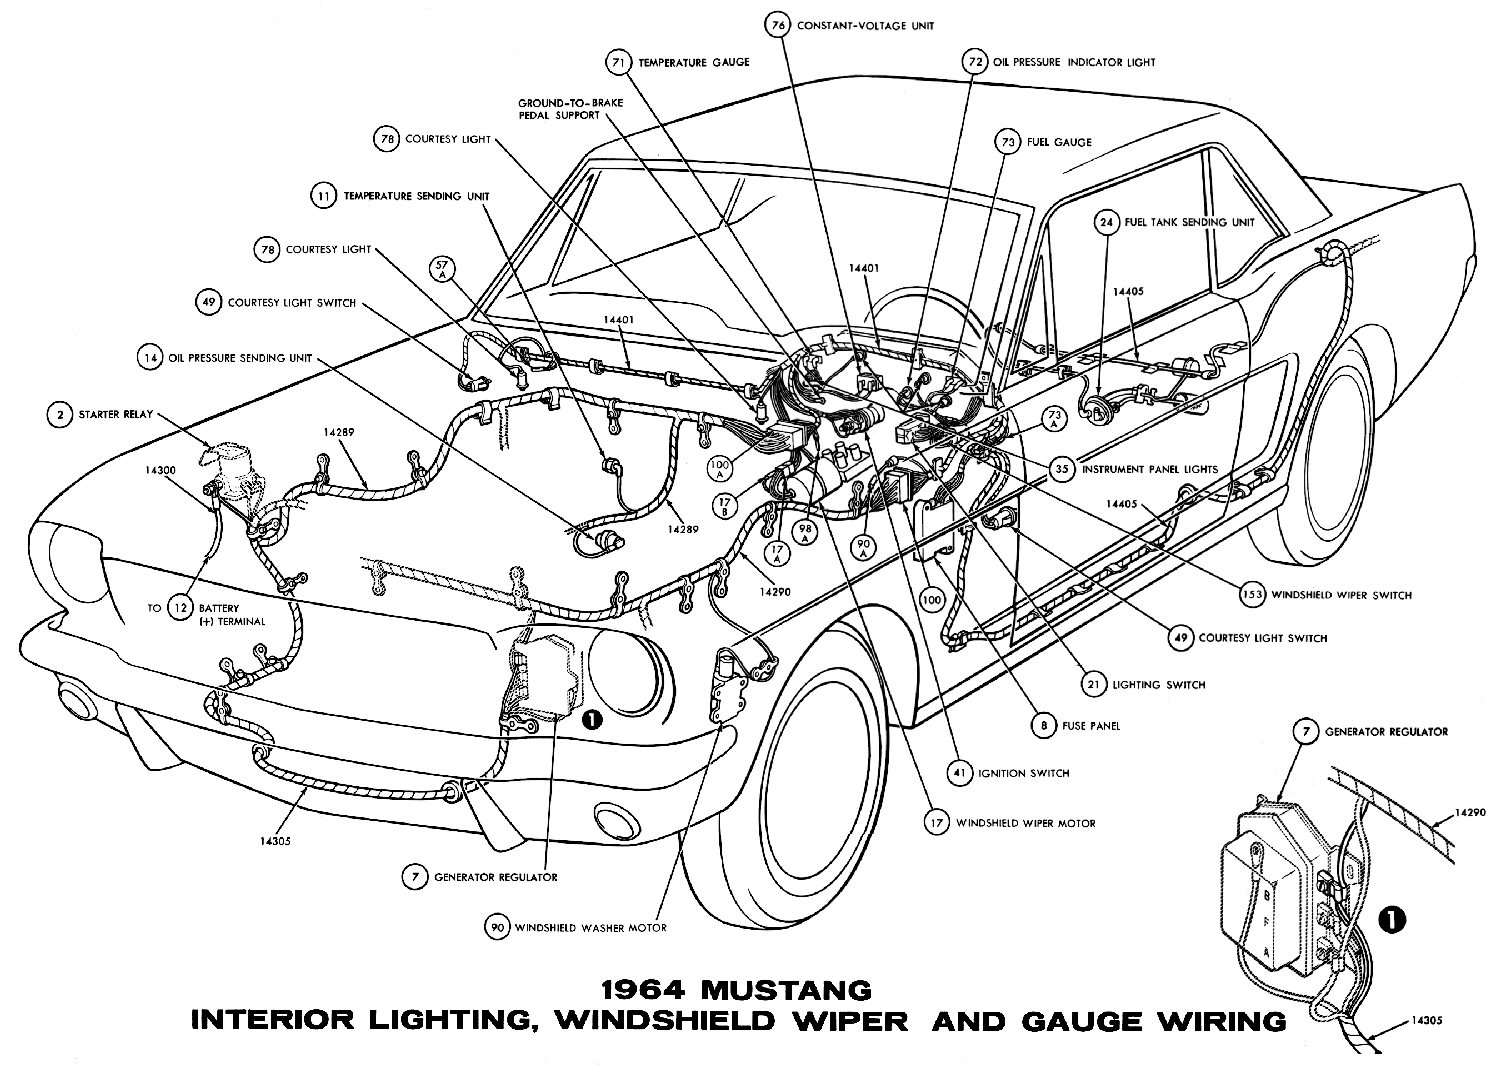 Car part schematics init org uk